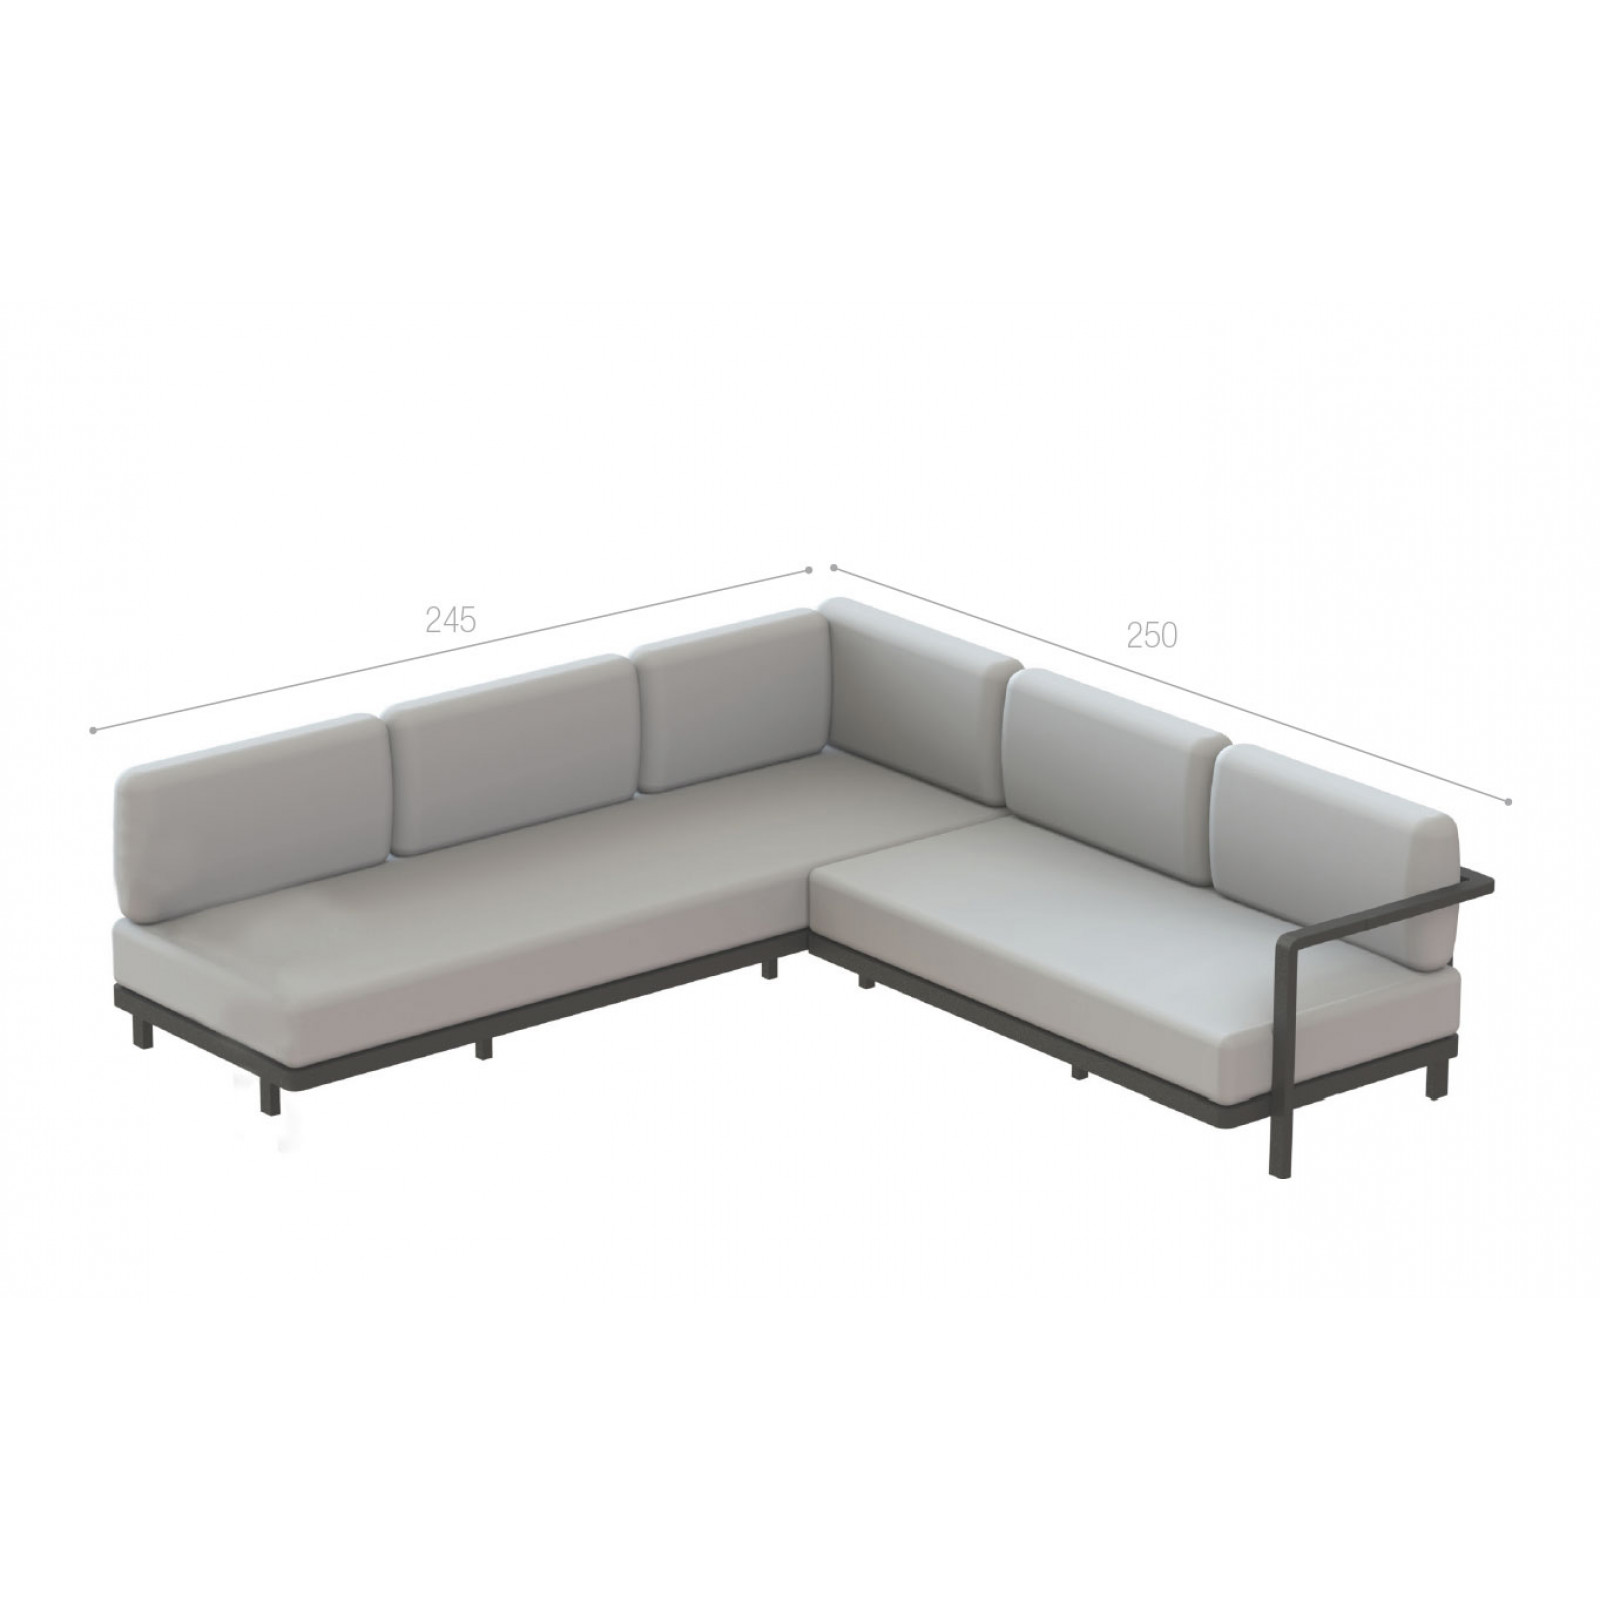 Royal Botania Red Label • Alura Lounge Ecksofa 04 • 250 × 245 links